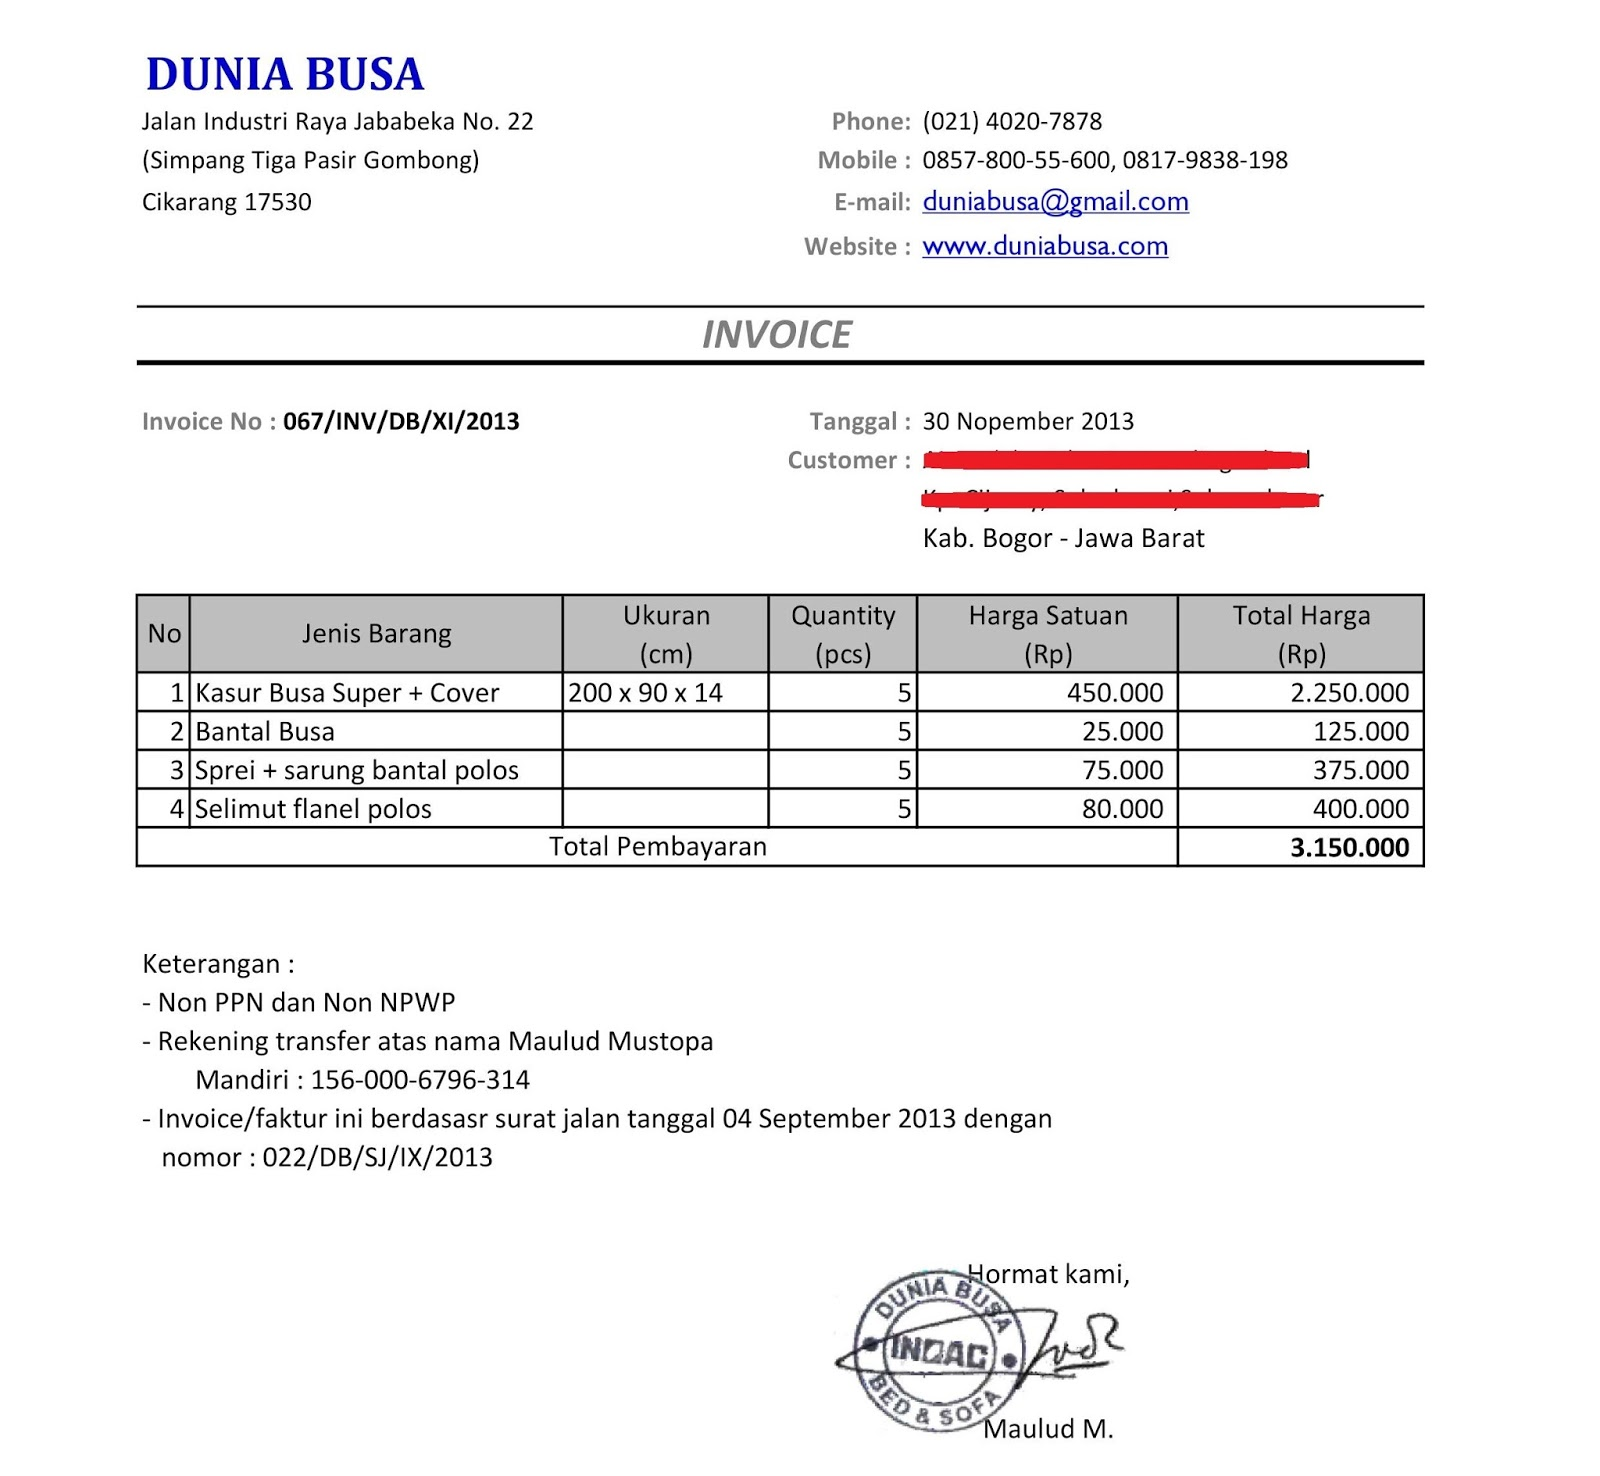 Usdgus  Scenic Free Invoice Online  Create Invoice Online  Invoice Template  With Remarkable Contoh Format Invoice Atau Surat Tagihan  Brankas Arsip  Free Invoice Online With Nice Please Confirm Receipt Of This Message Also Cash Receipts Book In Addition Potato Soup Receipt And Trust Receipts As Well As Low Carb Receipts Additionally Cash Receipt Templates From Sklepco With Usdgus  Remarkable Free Invoice Online  Create Invoice Online  Invoice Template  With Nice Contoh Format Invoice Atau Surat Tagihan  Brankas Arsip  Free Invoice Online And Scenic Please Confirm Receipt Of This Message Also Cash Receipts Book In Addition Potato Soup Receipt From Sklepco